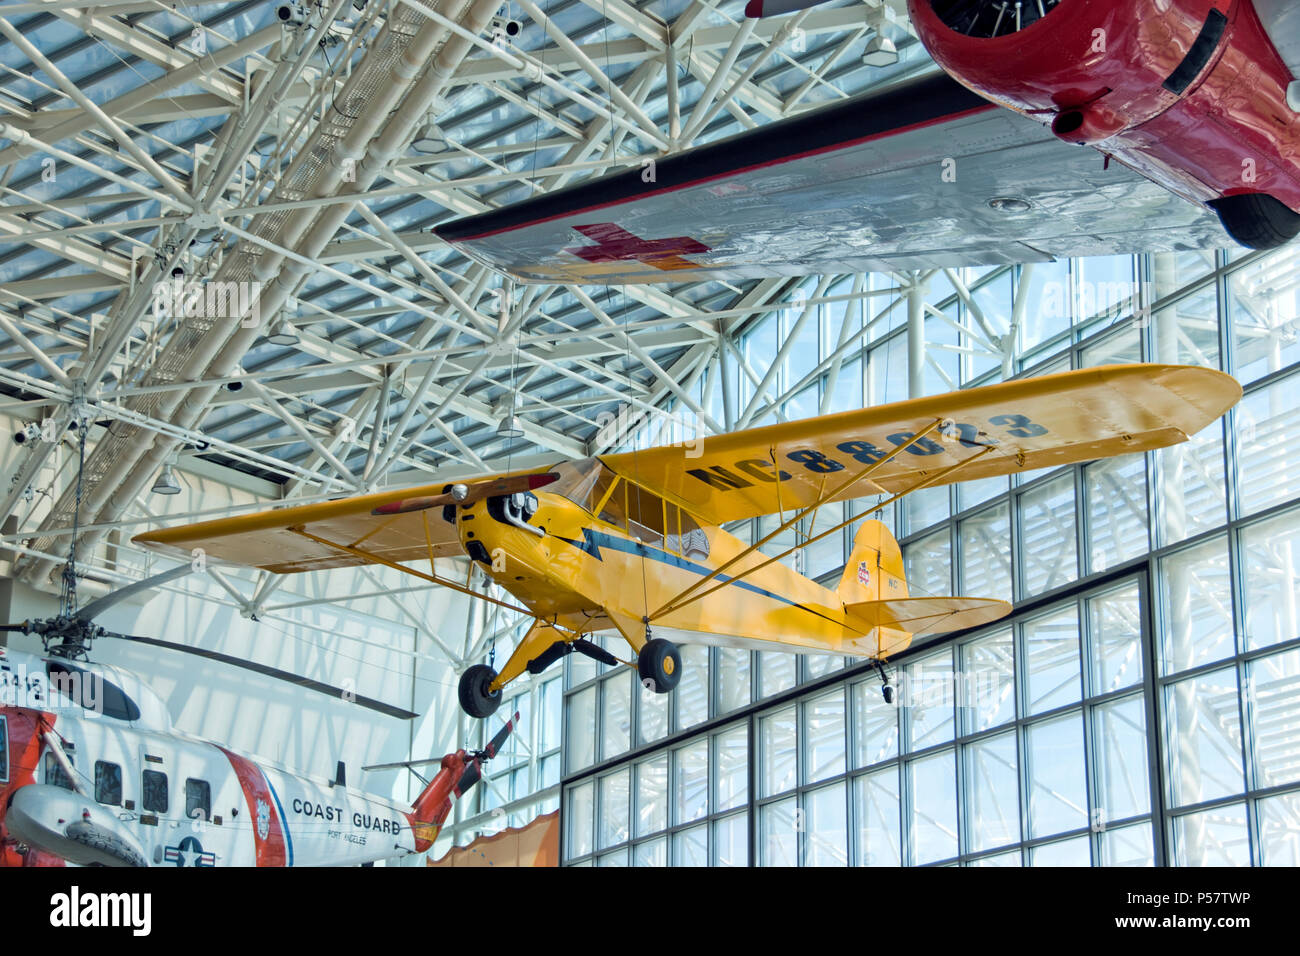 Piper J3 Cub at the Museum of Flight, Boeing Field, Washington Stock